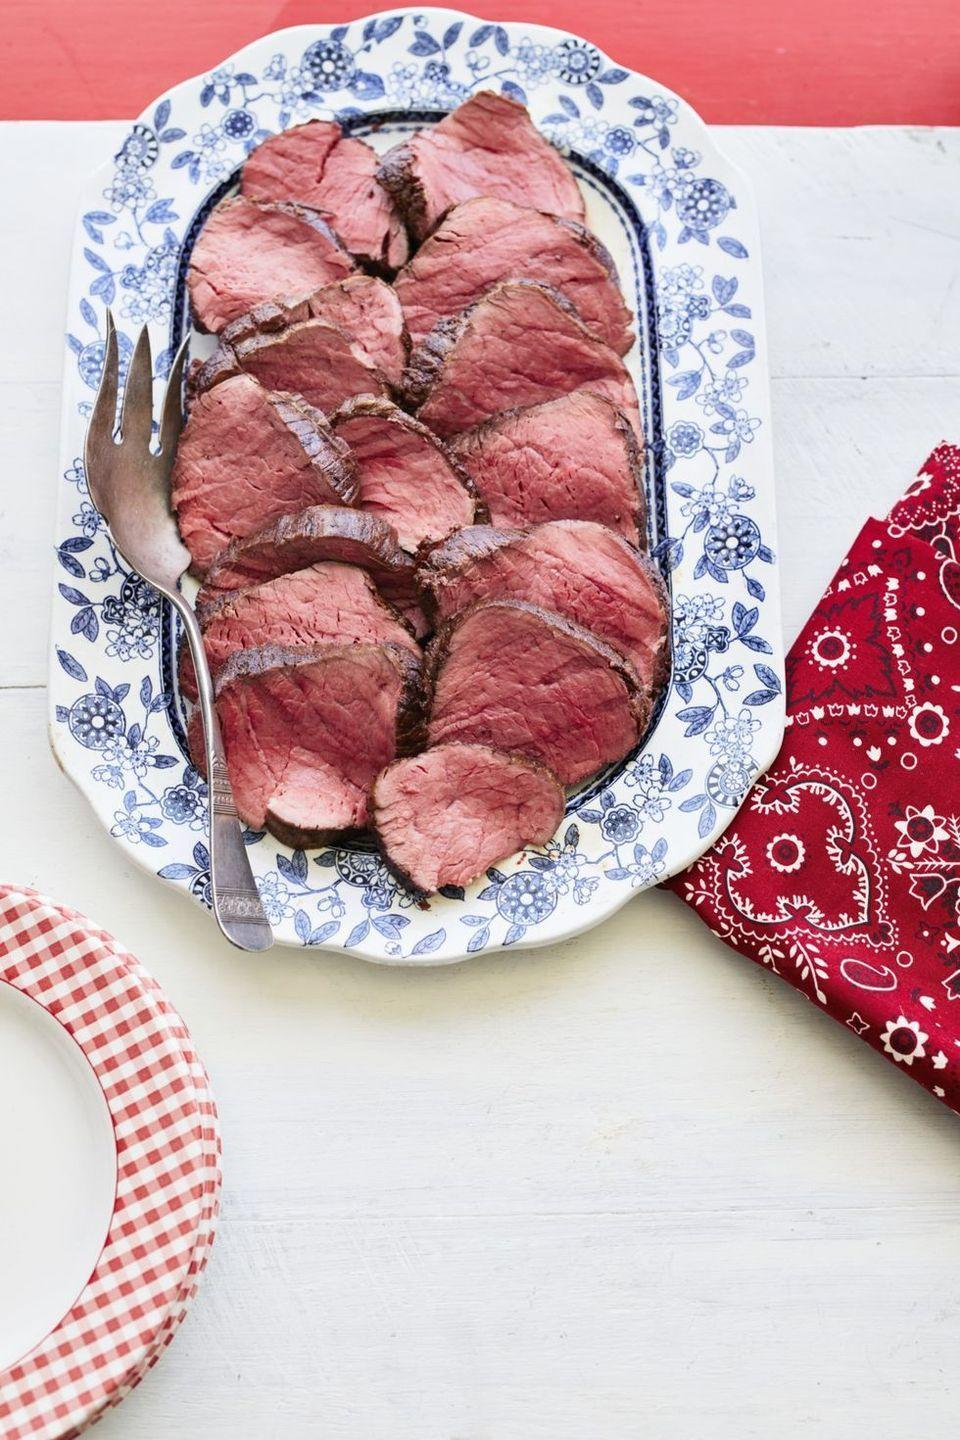 """<p>With the weather getting warmer, why not do some grilling? This tenderloin is the perfect special occasion main course.</p><p><a href=""""https://www.thepioneerwoman.com/food-cooking/recipes/a12122/ladds-grilled-tenderloin/"""" rel=""""nofollow noopener"""" target=""""_blank"""" data-ylk=""""slk:Get the recipe."""" class=""""link rapid-noclick-resp""""><strong>Get the recipe.</strong></a></p><p><a class=""""link rapid-noclick-resp"""" href=""""https://go.redirectingat.com?id=74968X1596630&url=https%3A%2F%2Fwww.walmart.com%2Fsearch%2F%3Fquery%3Dgrill%2Btongs&sref=https%3A%2F%2Fwww.thepioneerwoman.com%2Ffood-cooking%2Fmeals-menus%2Fg35585877%2Feaster-recipes%2F"""" rel=""""nofollow noopener"""" target=""""_blank"""" data-ylk=""""slk:SHOP GRILL TONGS"""">SHOP GRILL TONGS</a></p>"""